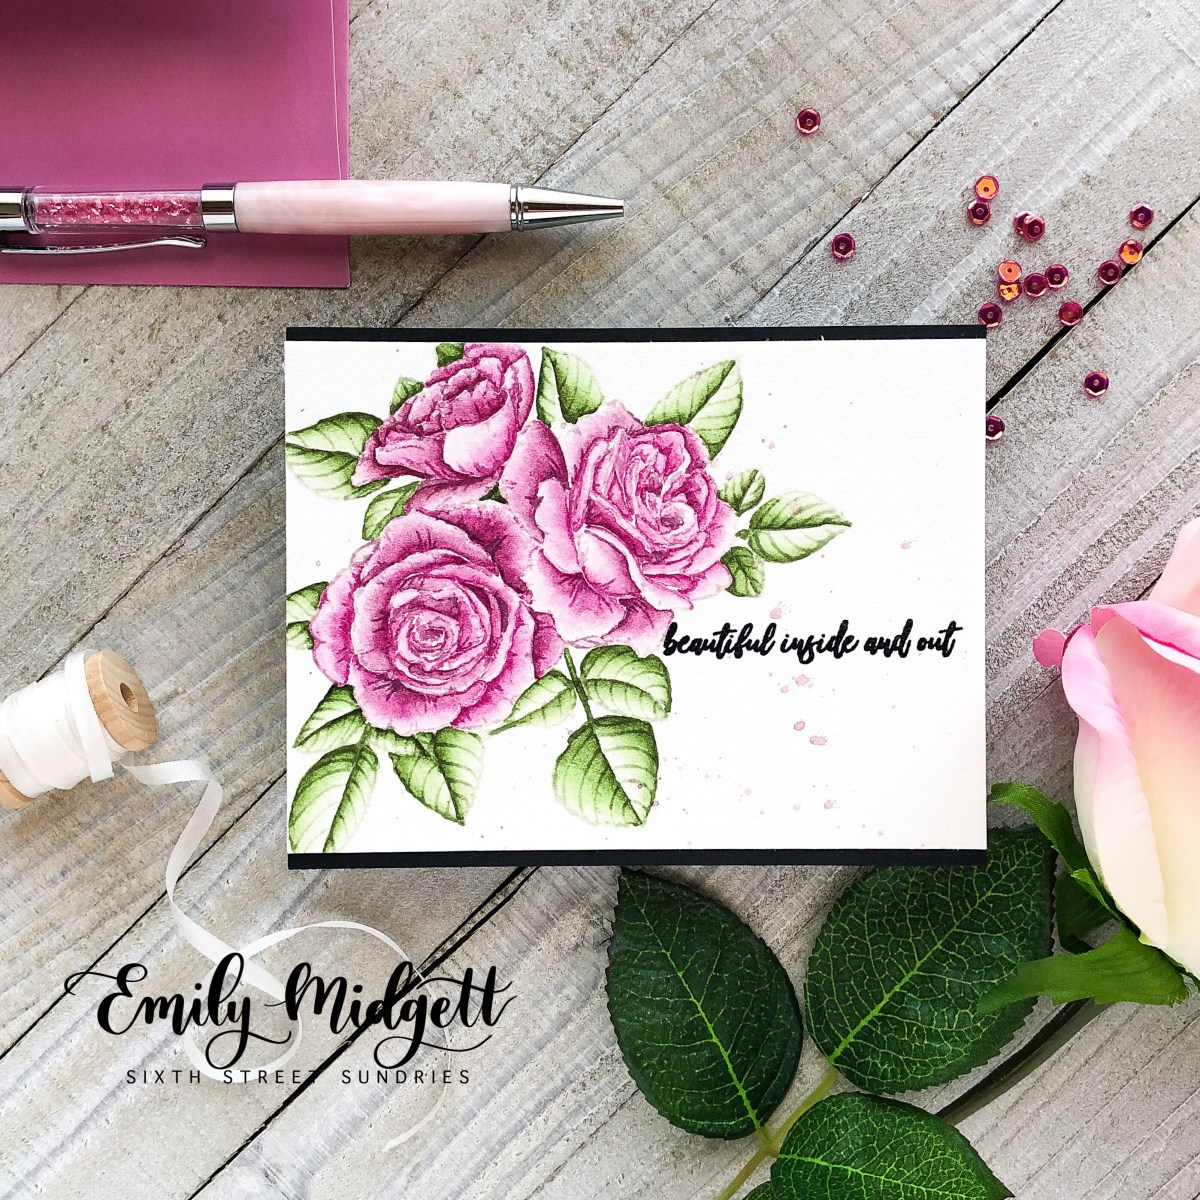 No-line watercoloring with Picket Fence Studios